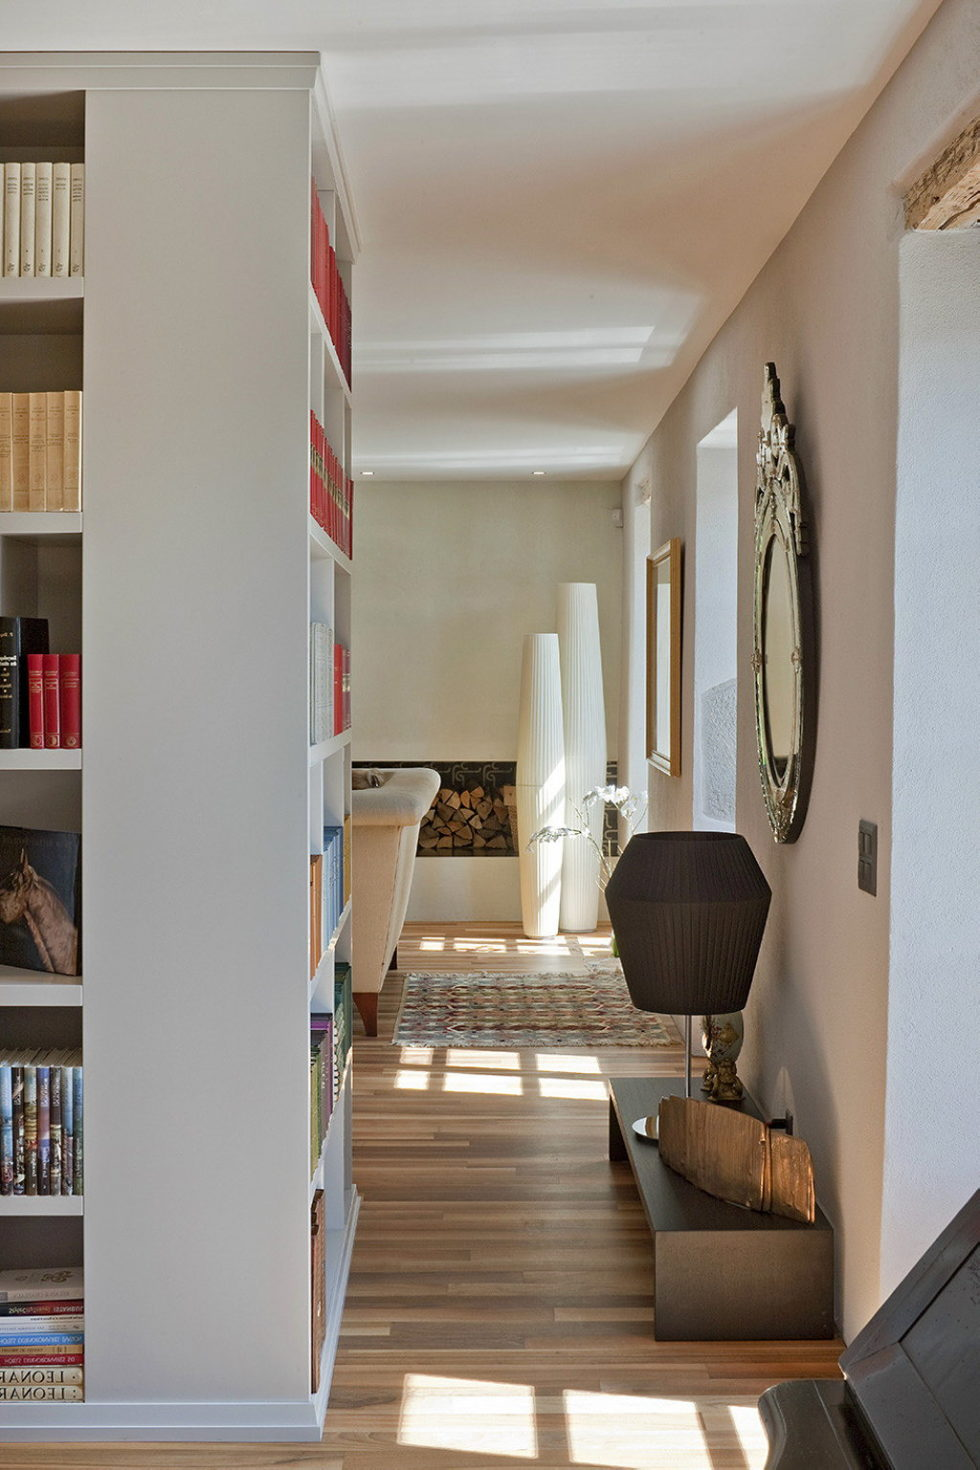 Transformation Of The Country House From Arttesa Interior Design Studio 7